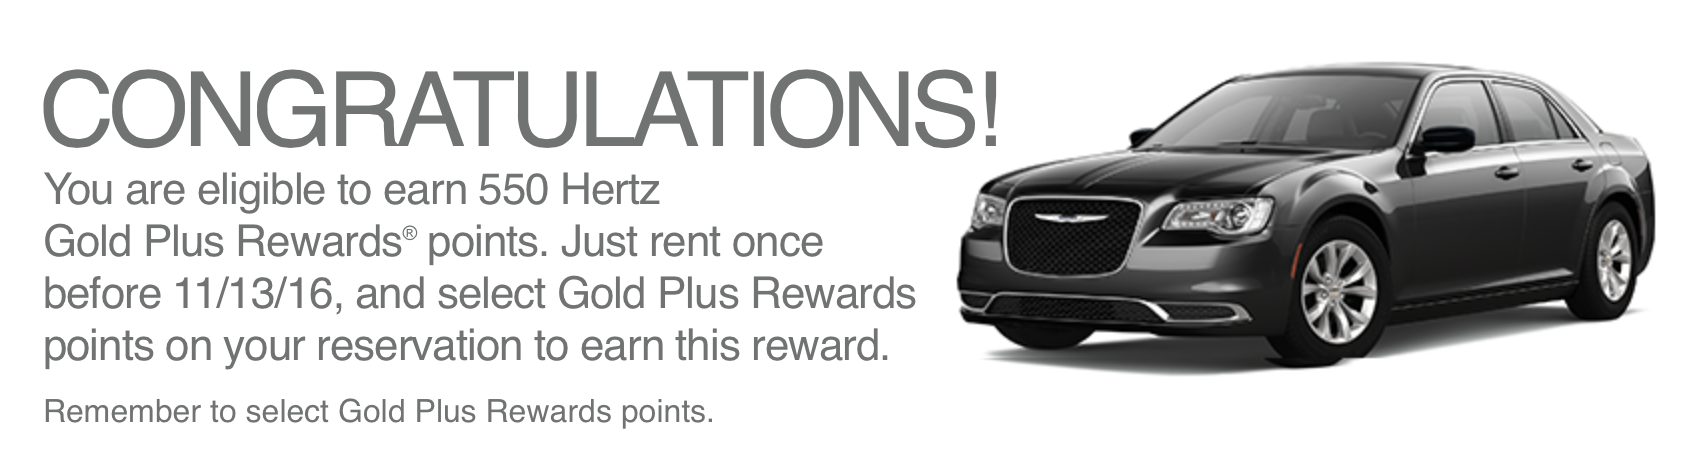 Screen shot of bonus points added to account Fall 2016 promotion